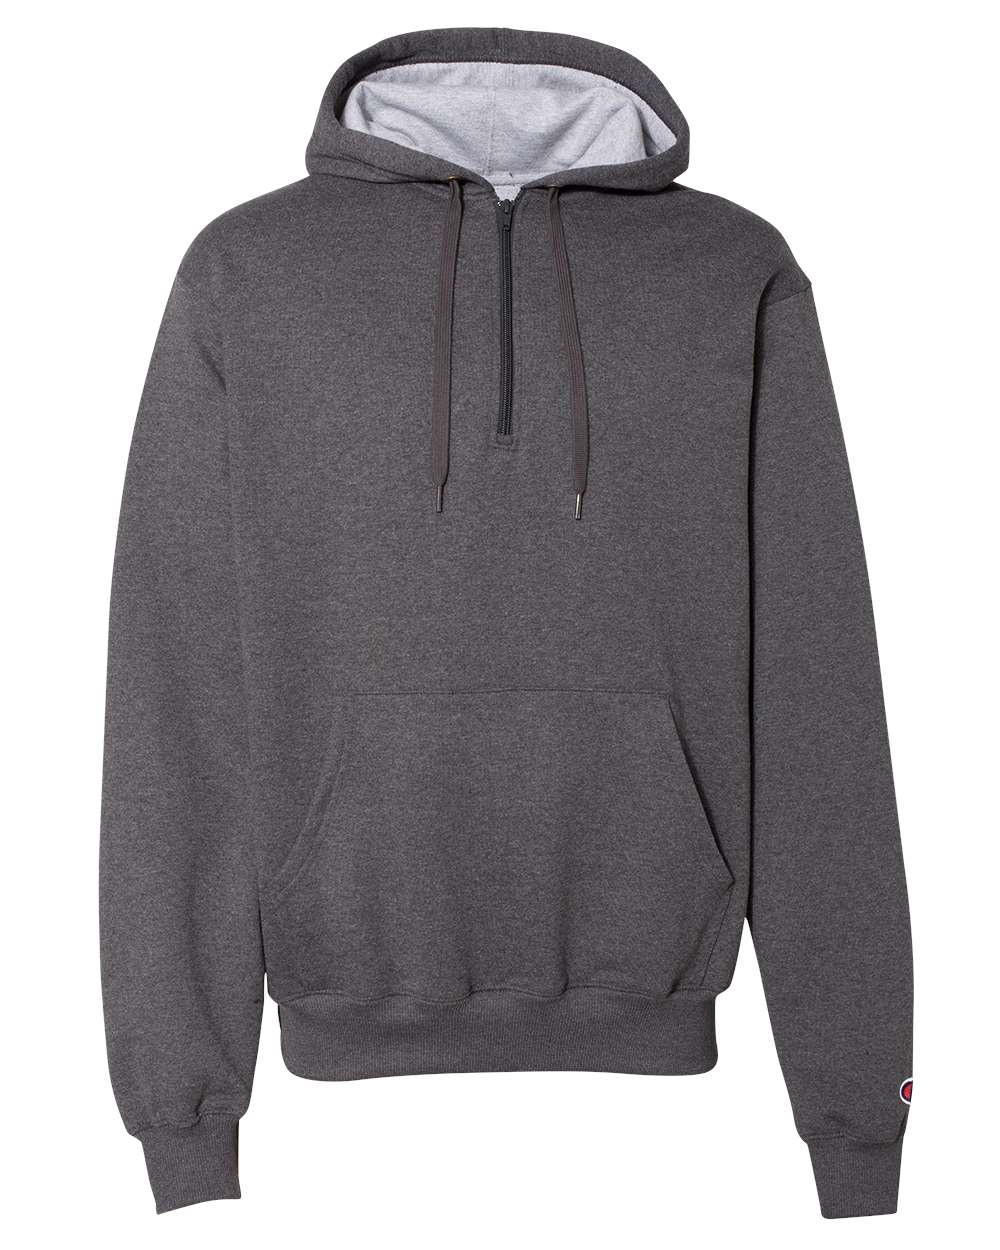 Champion-Mens-Cotton-Max-Hooded-Quarter-Zip-Sweatshirt-Pullover-S185-up-to-3XL miniature 9